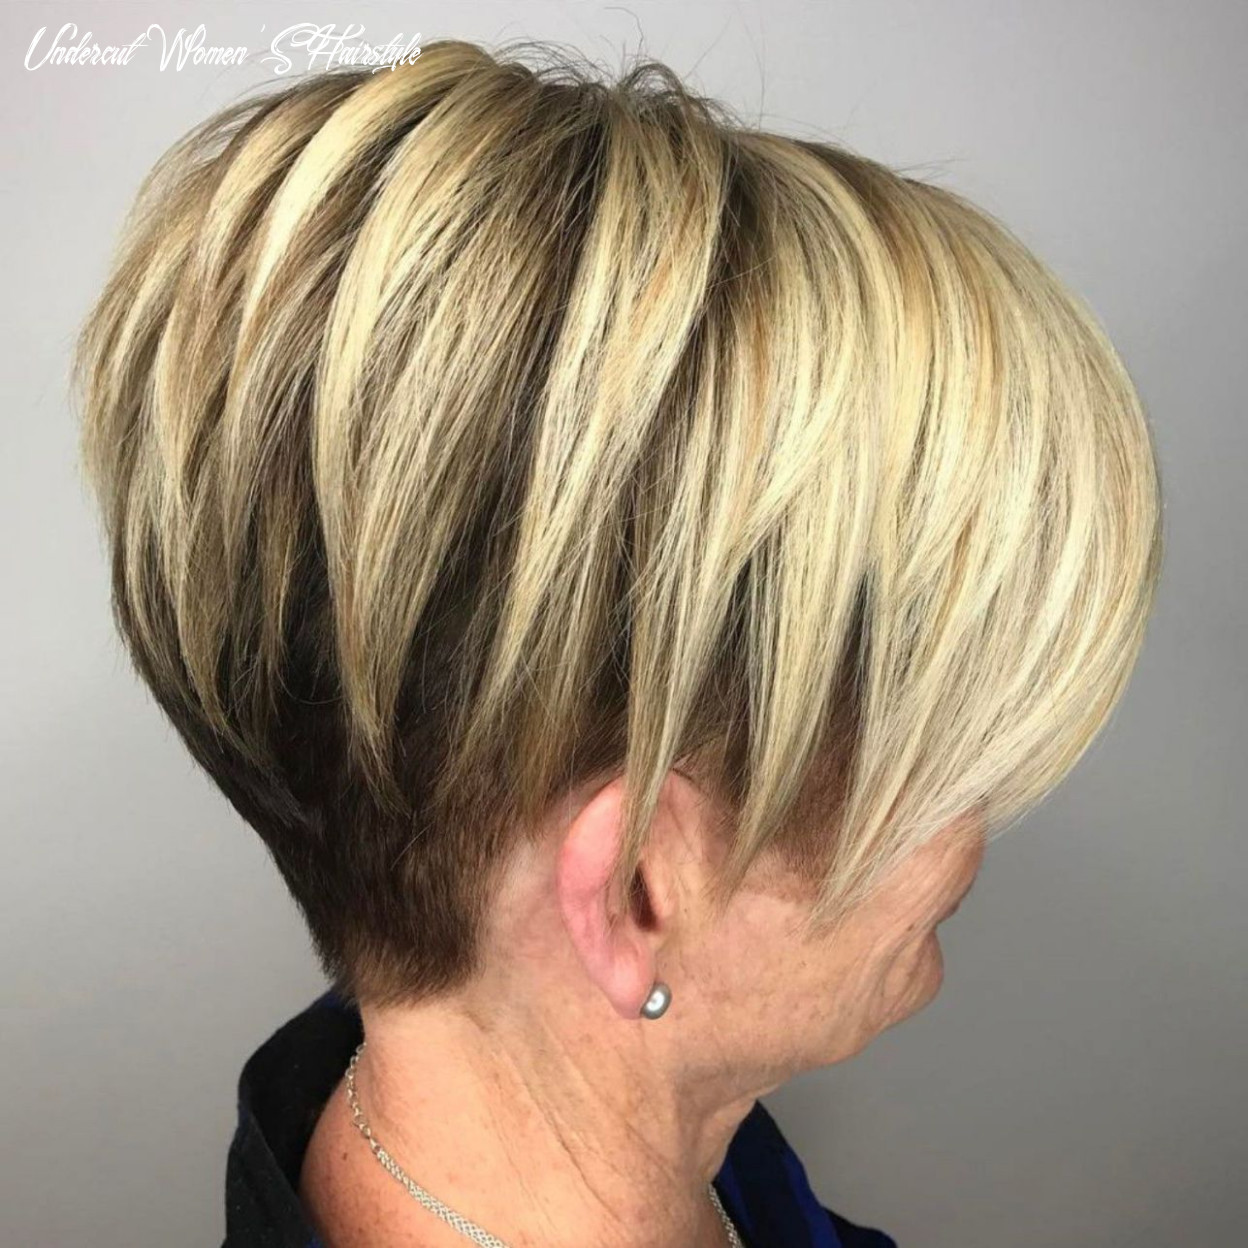 12 classy and simple short hairstyles for women over 12 | undercut